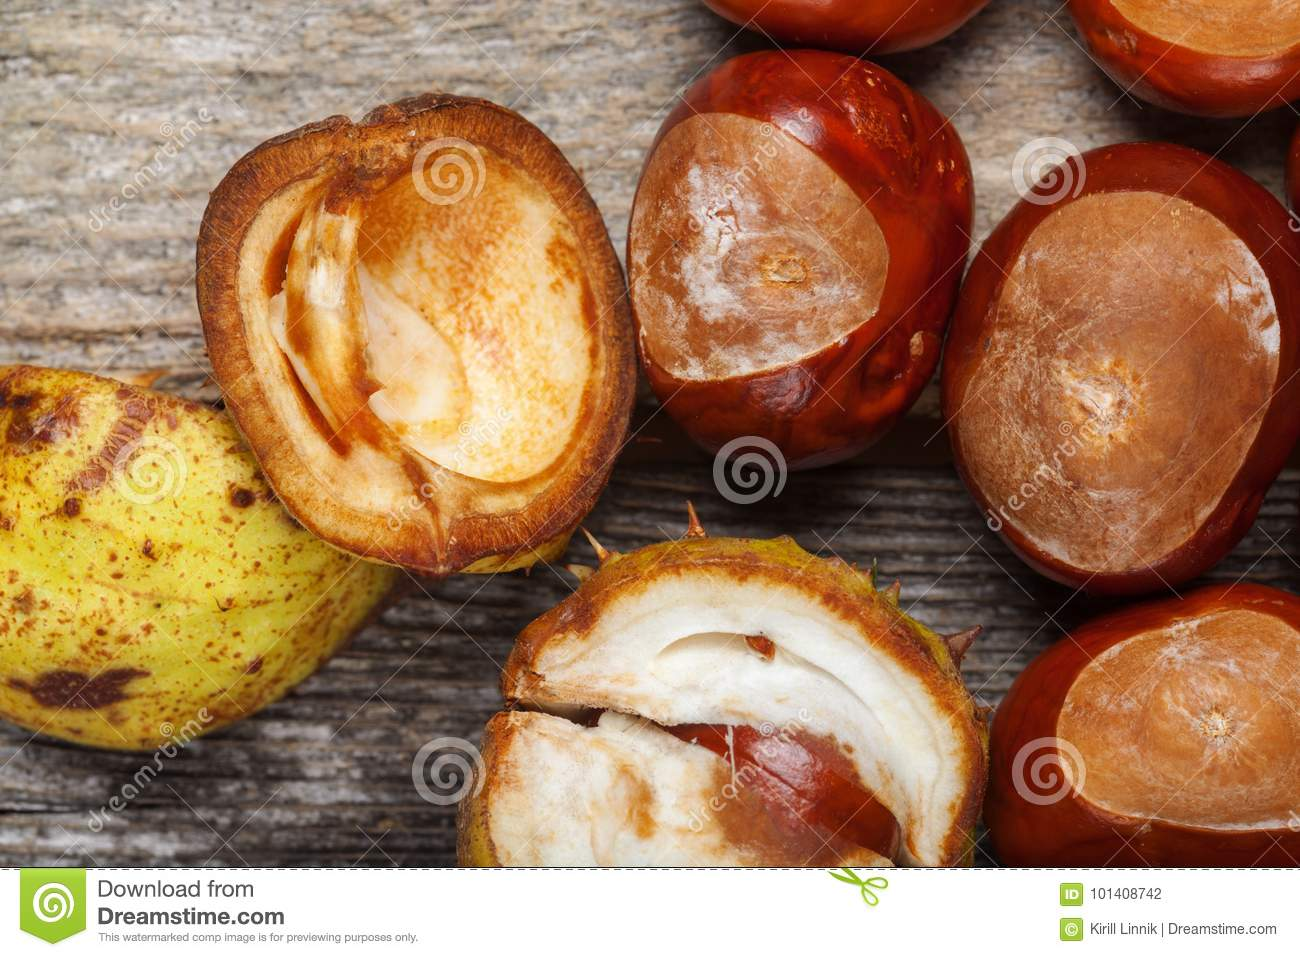 Download Chestnut on the table stock photo. Image of retro, copy - 101408742